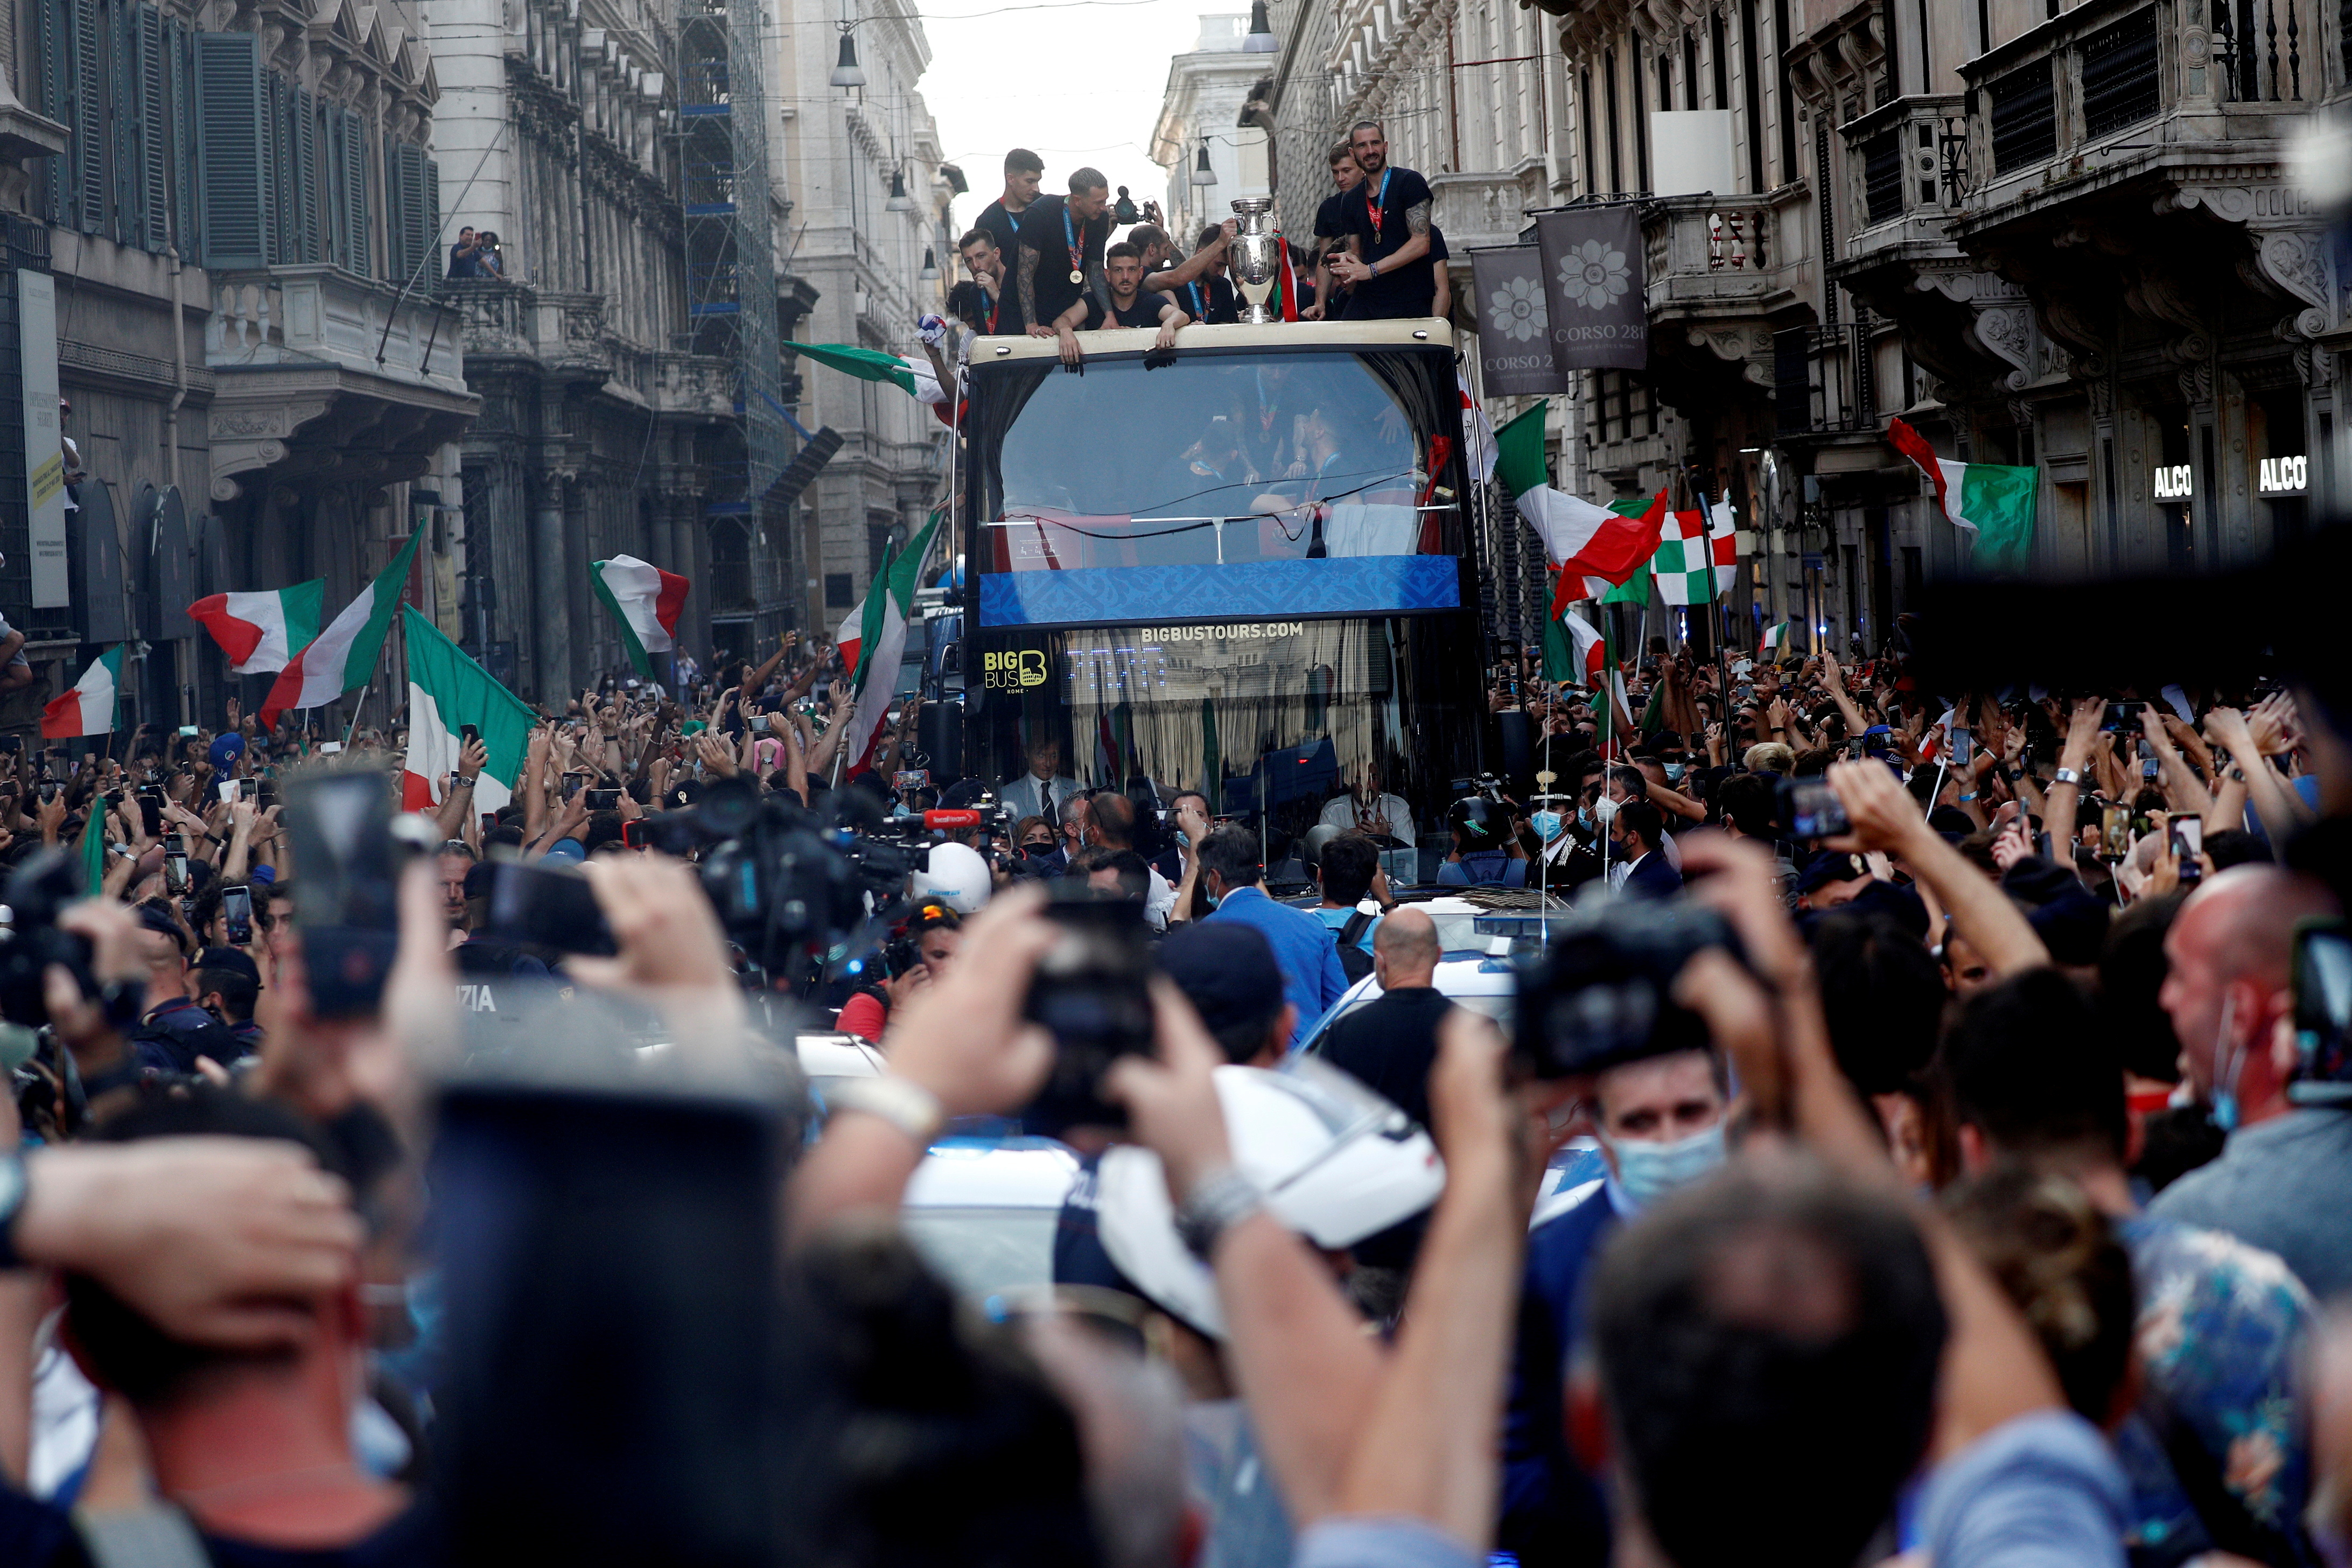 Soccer Football - Euros 2020 - The Italy team drive through Rome on a open top bus tour amidst celebrating fans after winning the Euros 2020, July 12, 2021. REUTERS/Guglielmo Mangiapane/File Photo